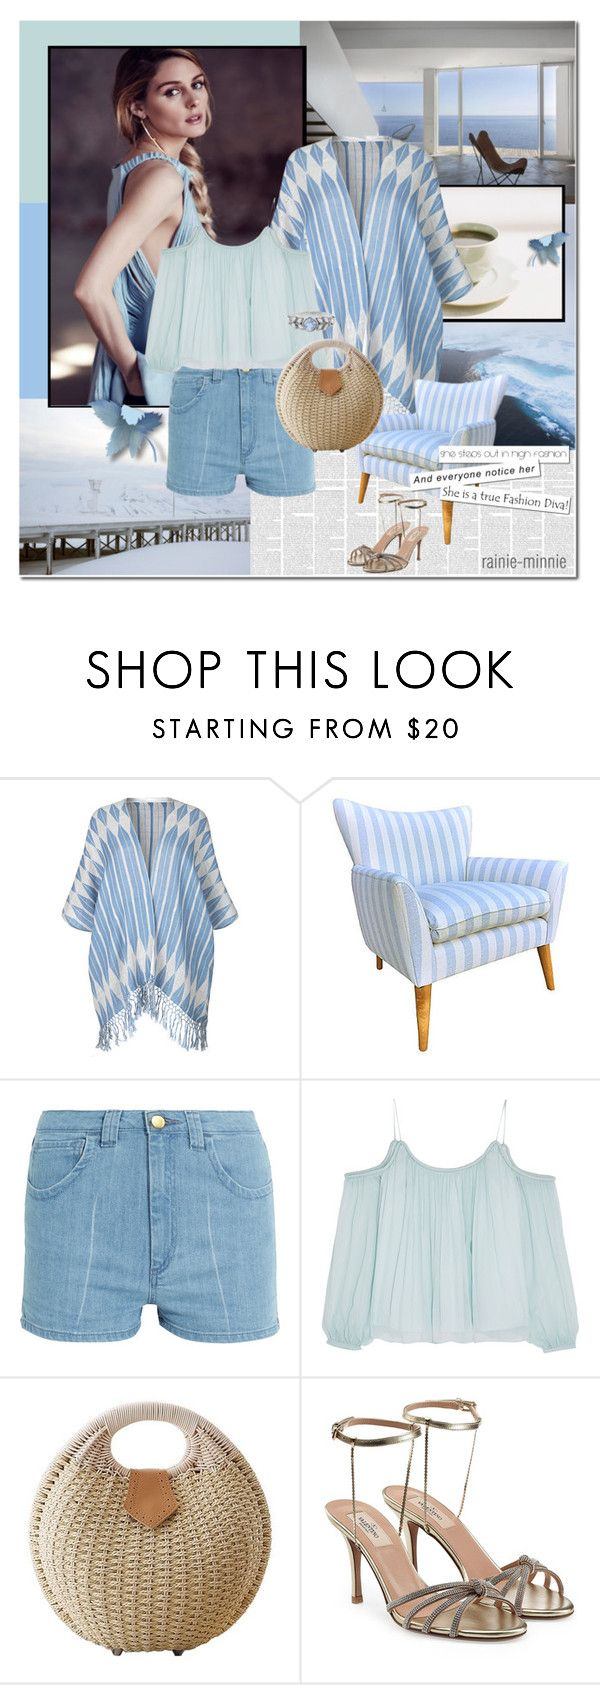 """Blue Summer"" by rainie-minnie ❤ liked on Polyvore featuring BeckSöndergaard, Kim Salmela, Topshop Unique, Elizabeth and James, Valentino and Cathy Waterman"